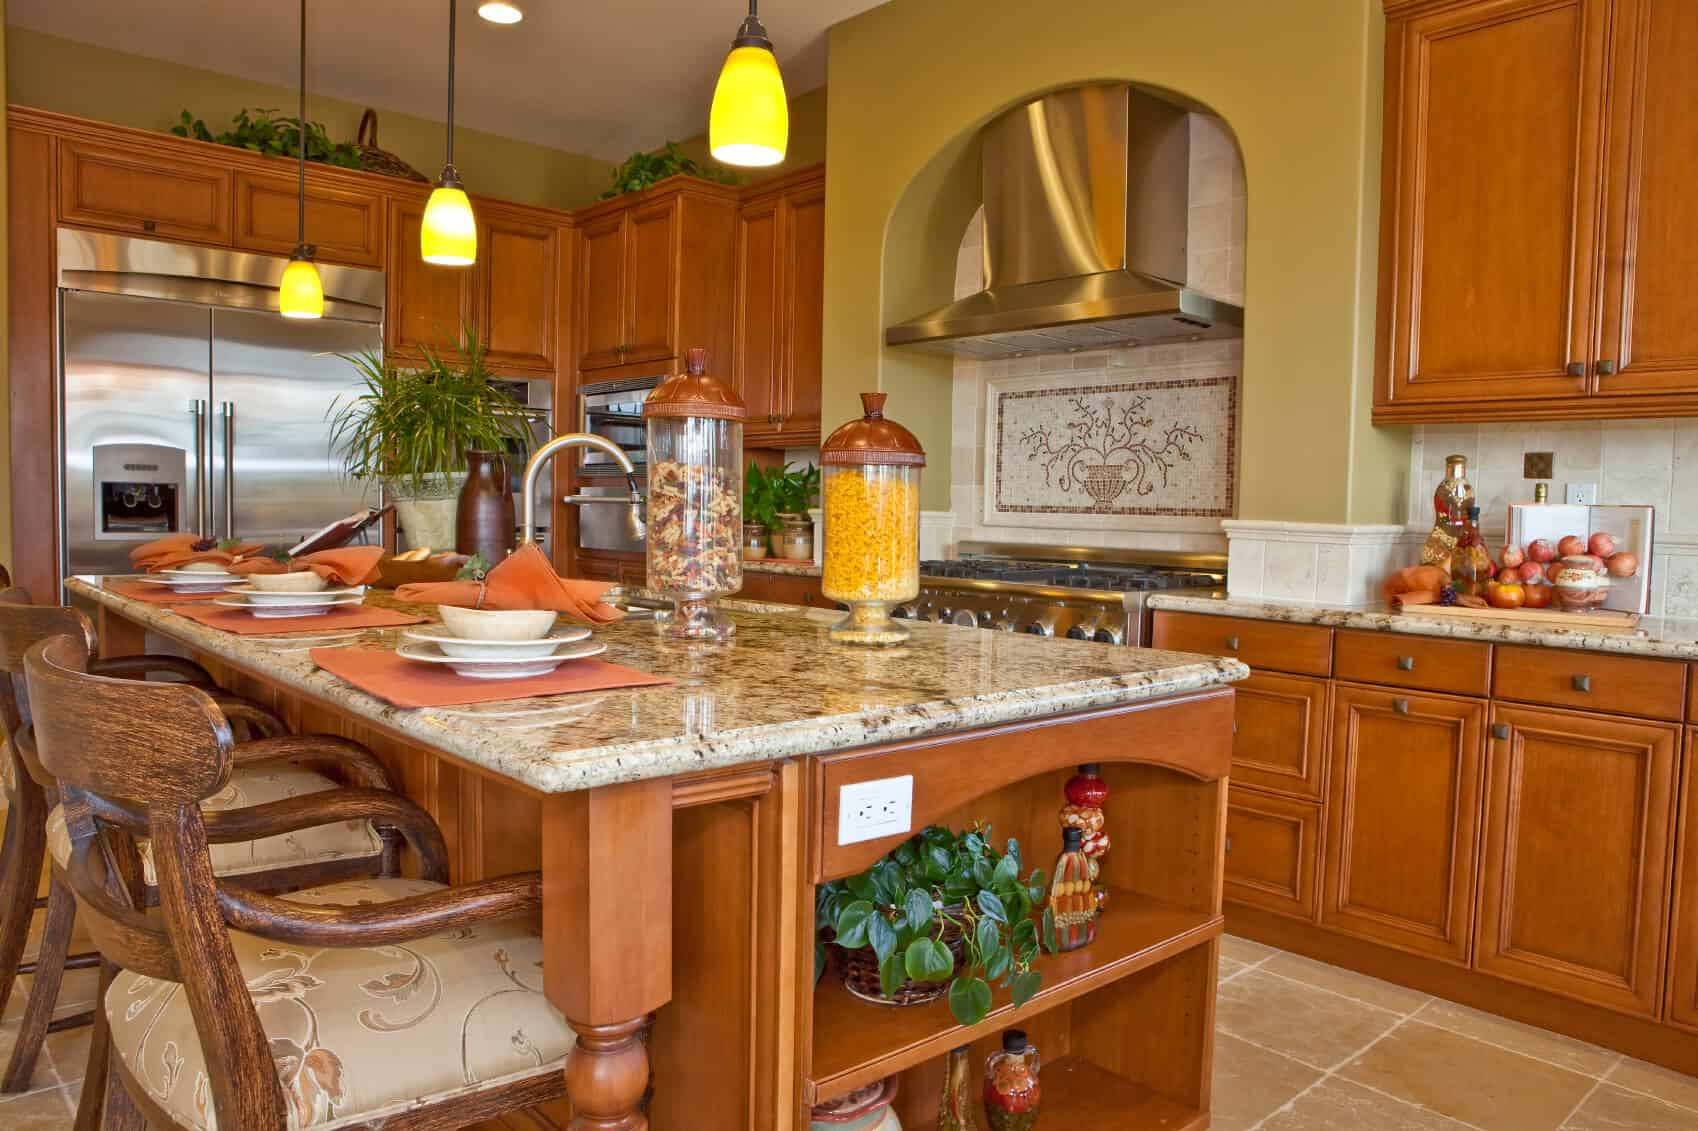 Warm Wood Tones Unify This Kitchen Featuring Large Island With Ample Seating Area Built